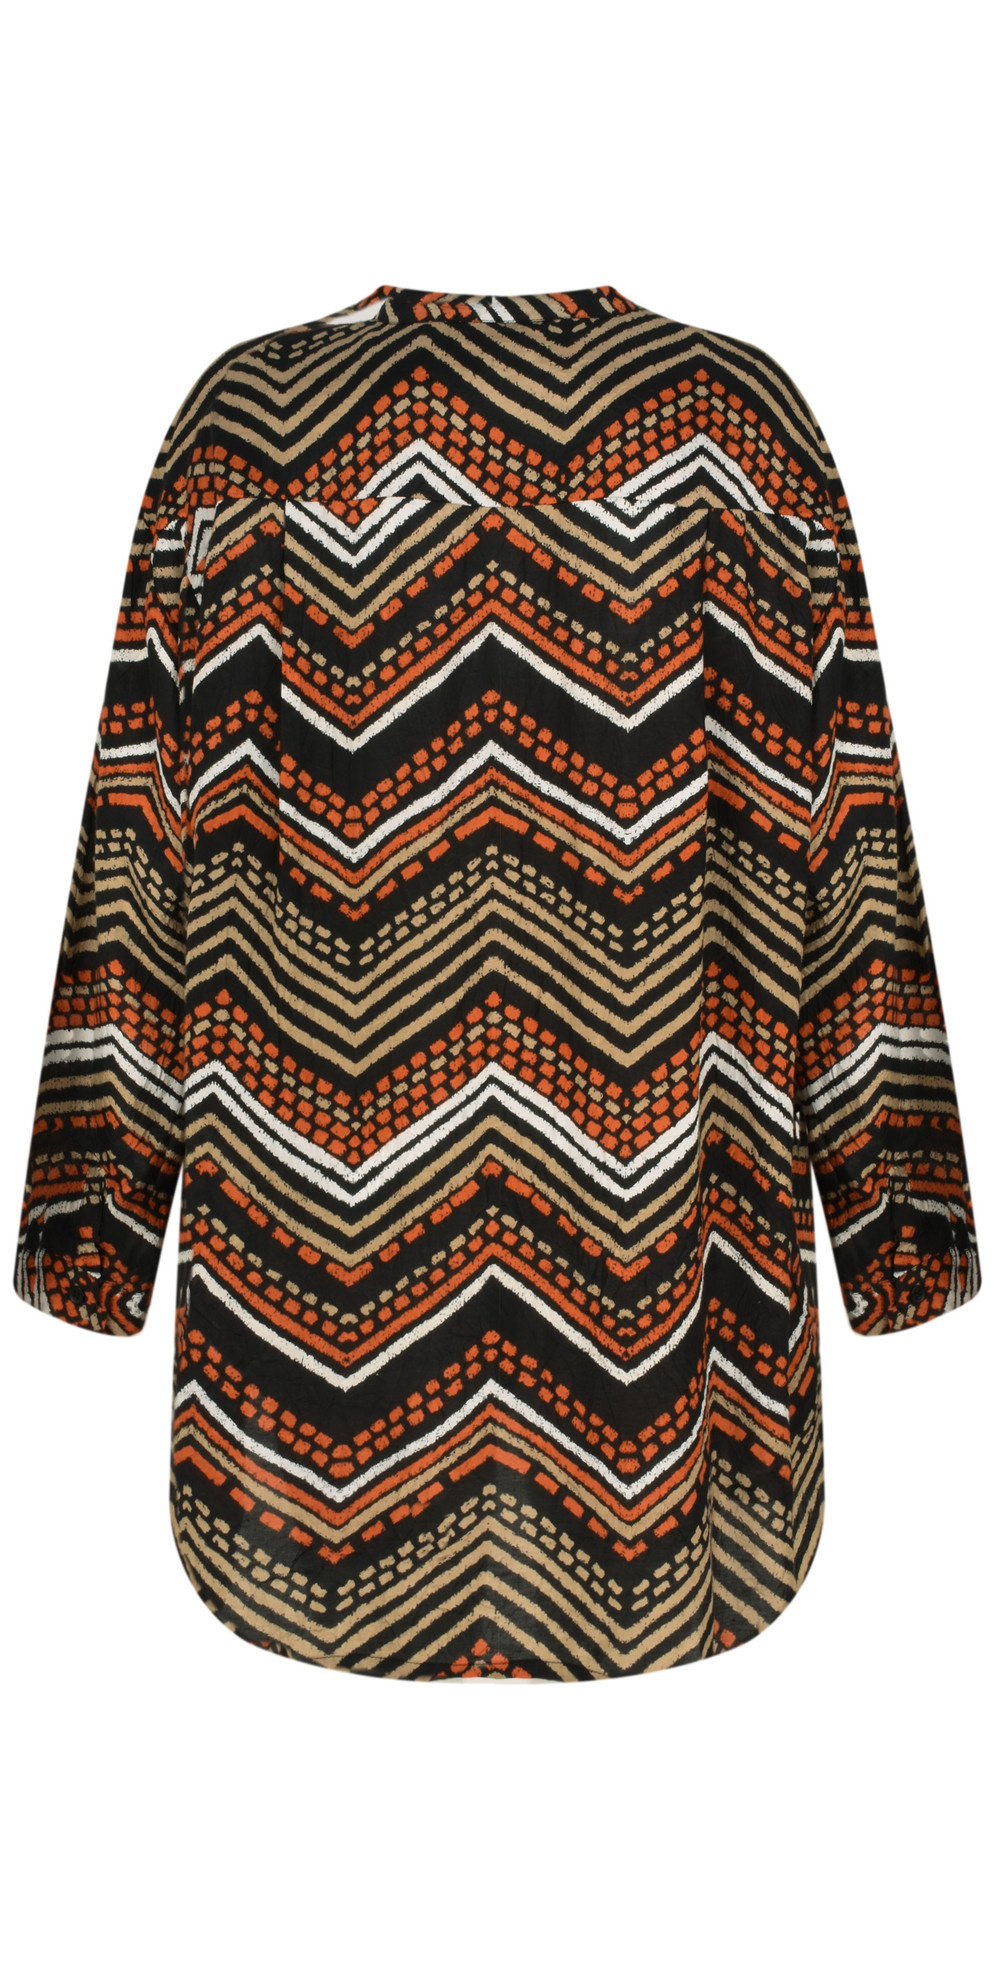 Masai Clothing Itsi Zig Zag Blouse In Flame Org Main Image